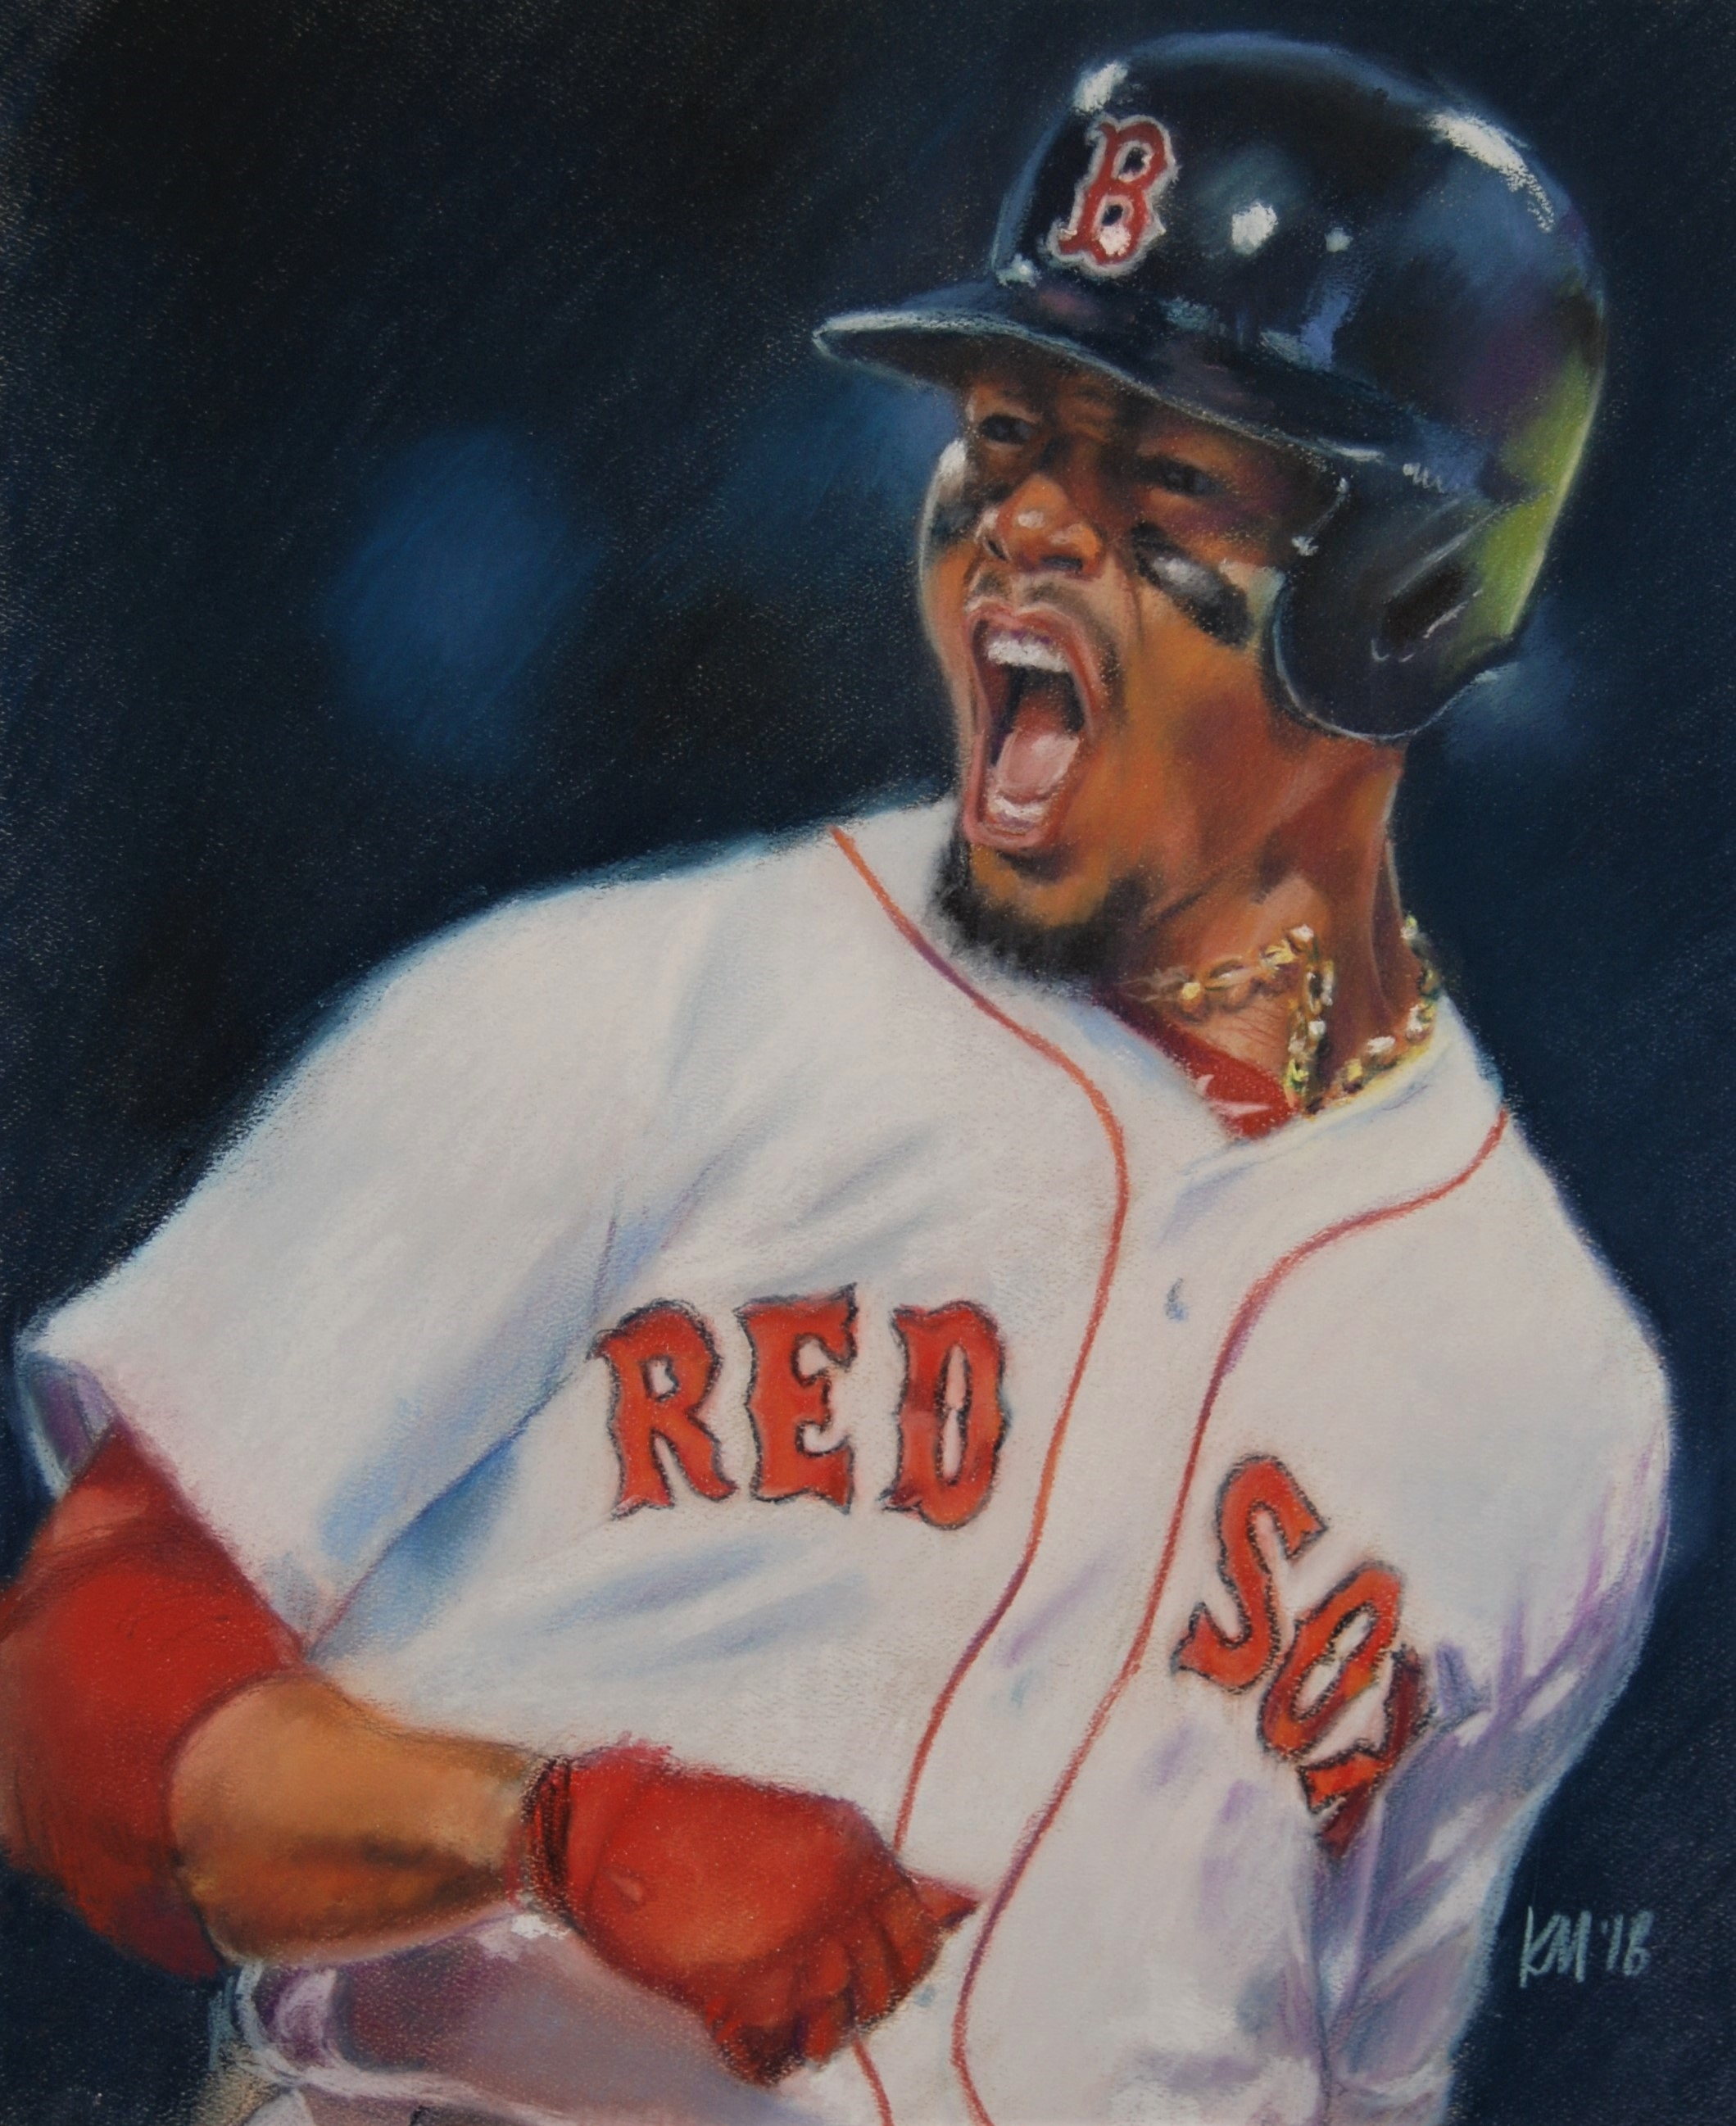 Mookie's Grand Slam, color pastel on paper, 2018